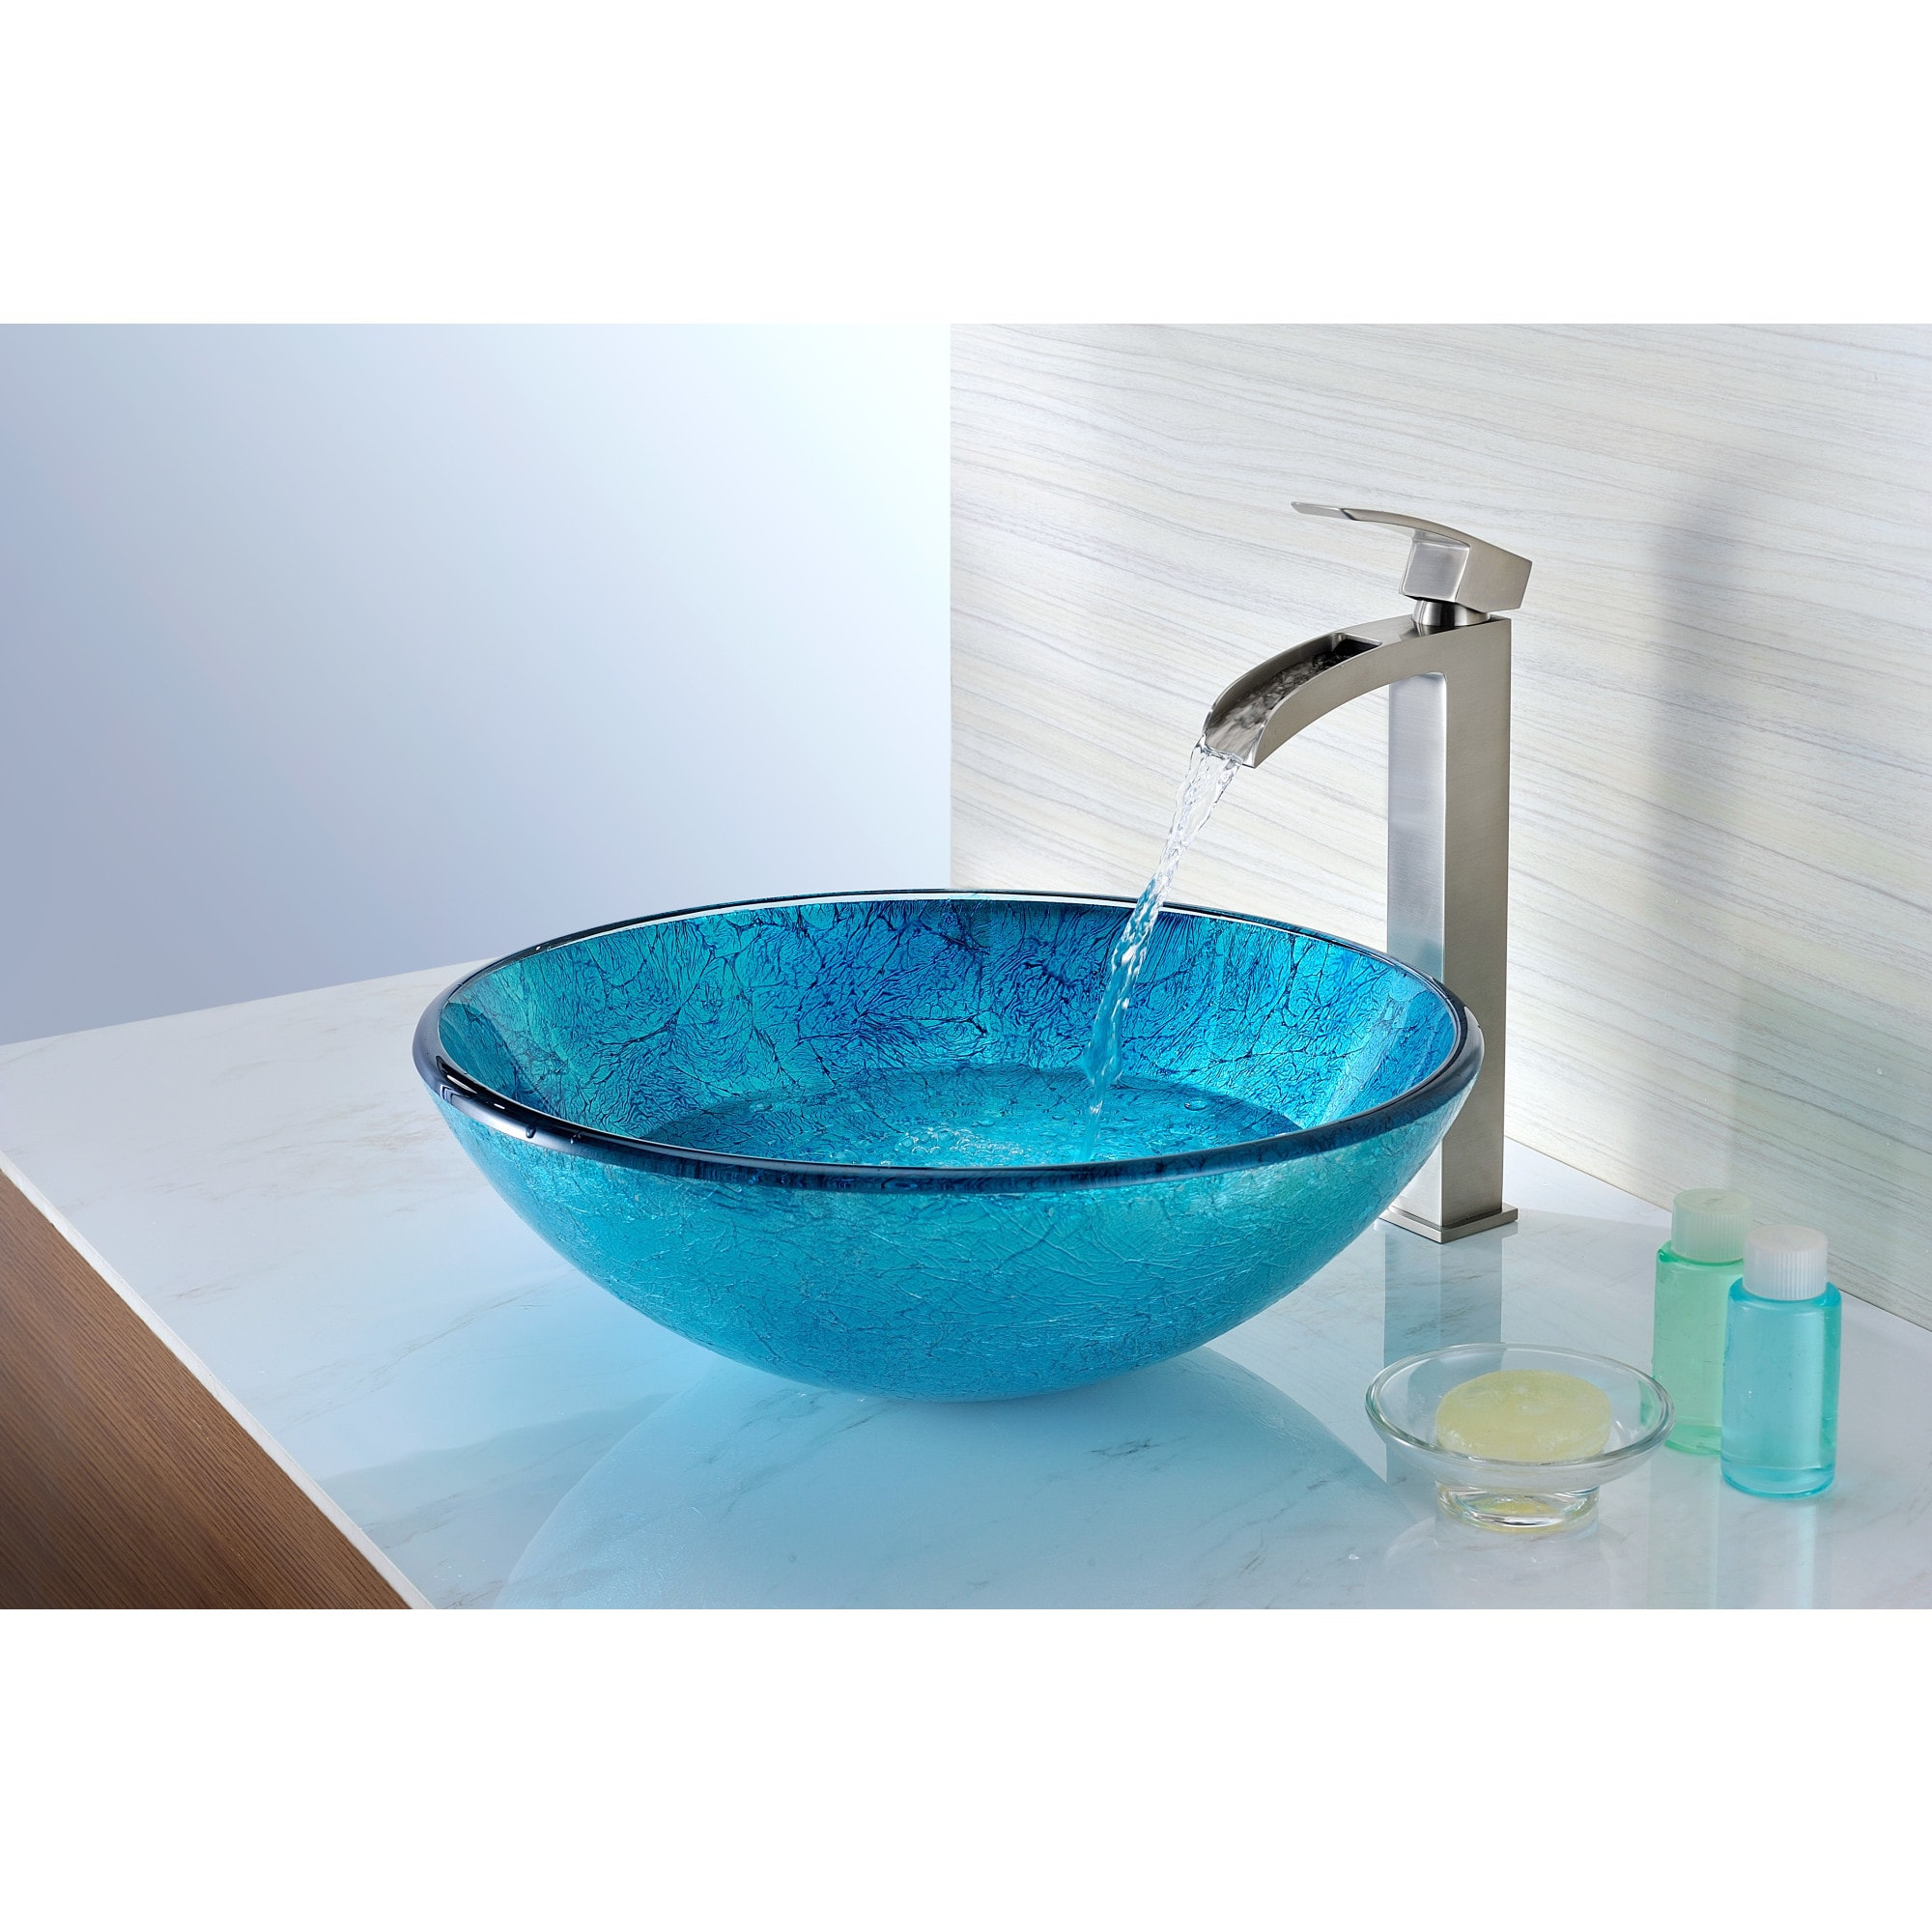 ANZZI Accent Series Deco-Glass Vessel Sink in Emerald Ice - Free ...